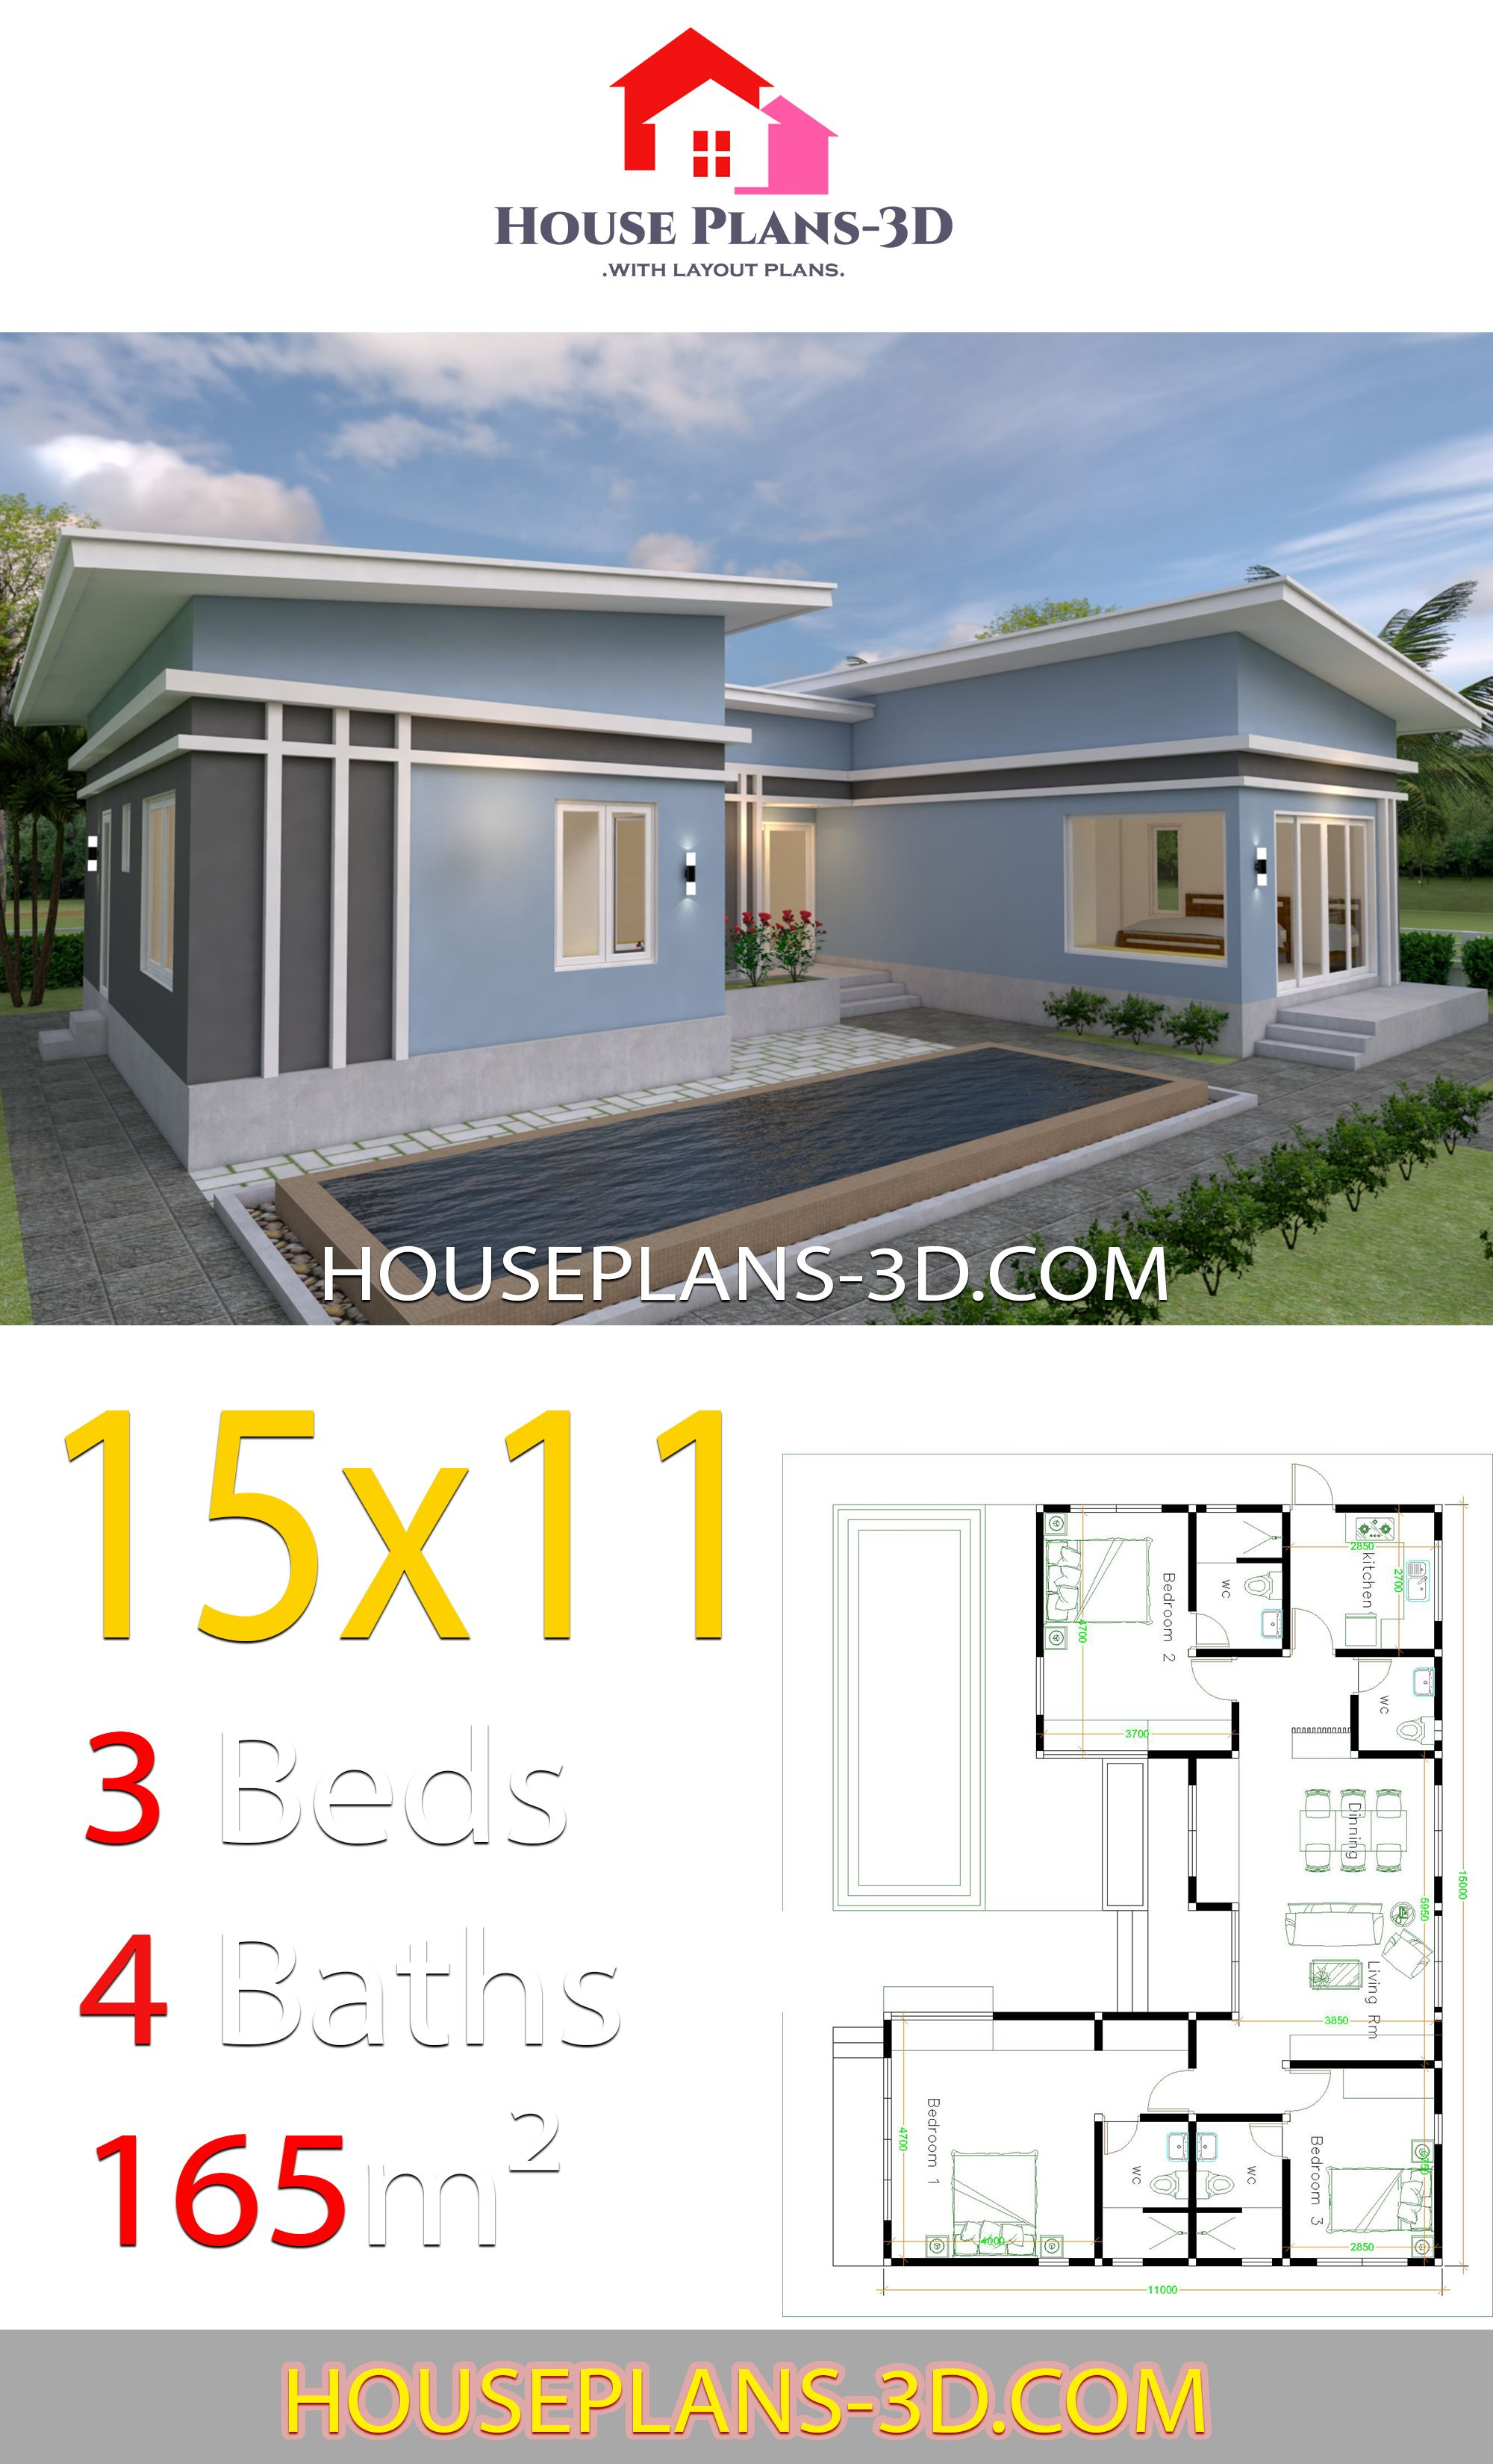 House Plans 15x11 With 3 Bedrooms Slope Roof House Plans 3d In 2020 House Plans Beach House Plans House Plan Gallery